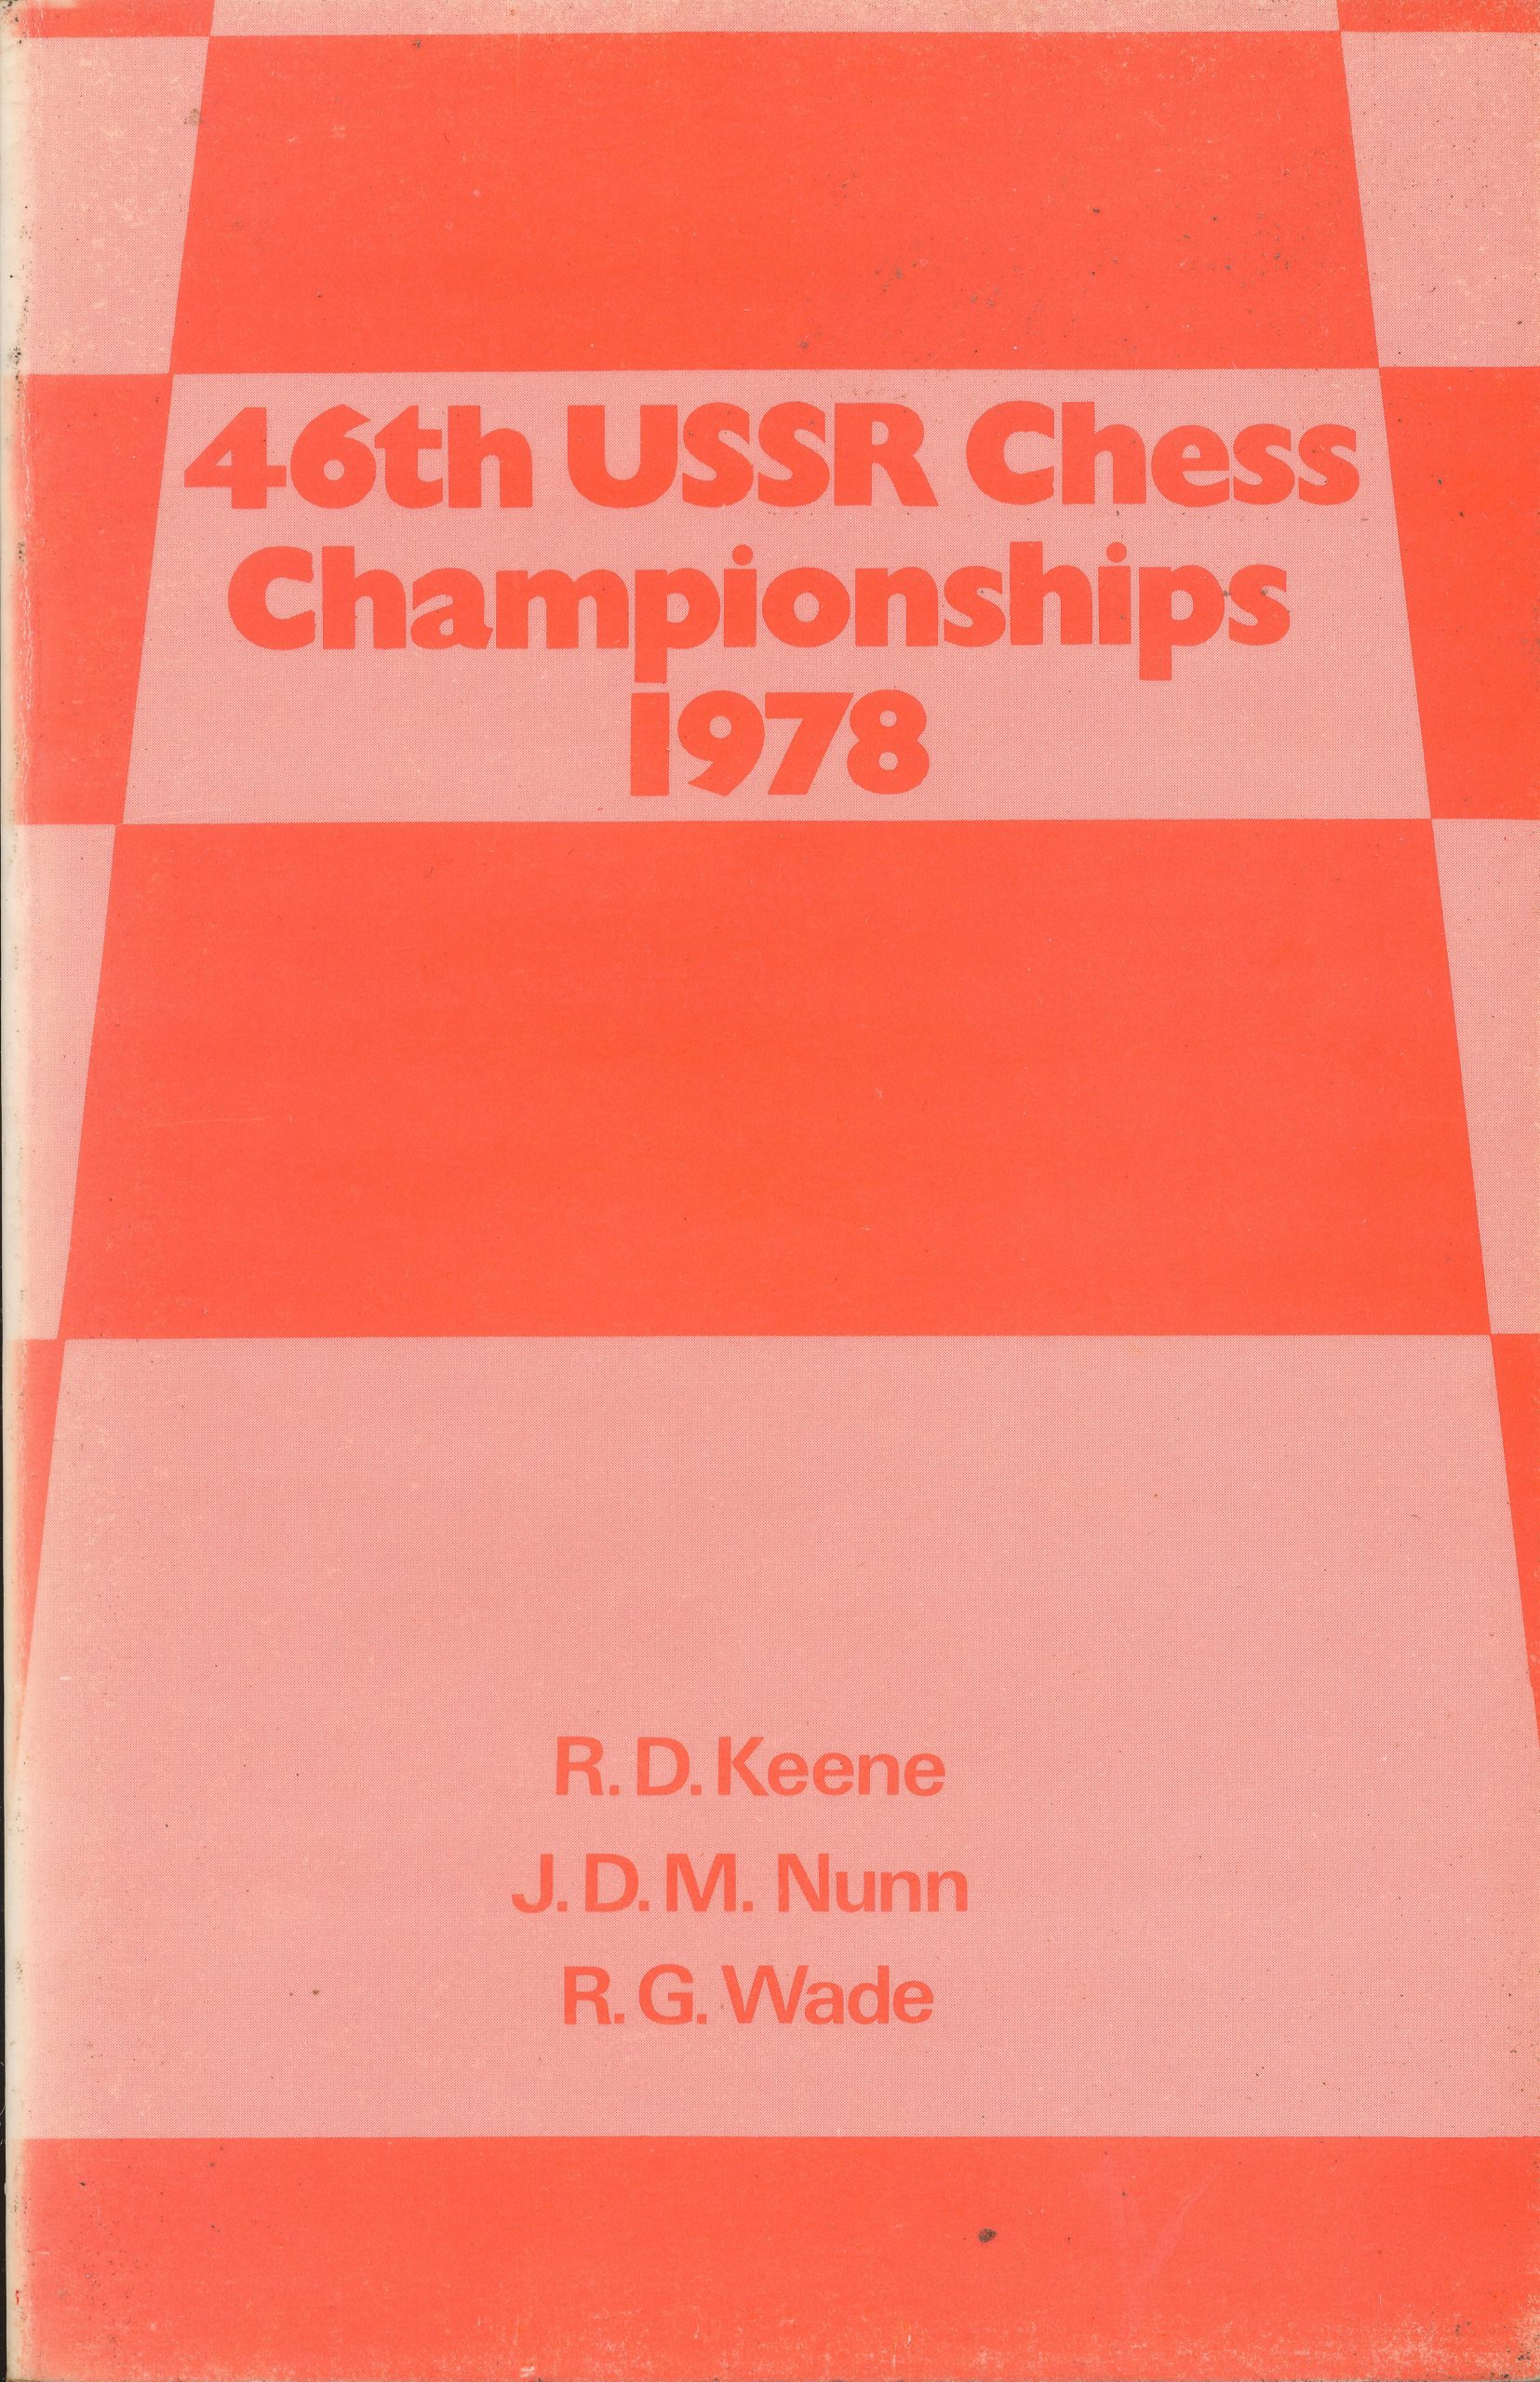 46th USSR Chess Championships 1978, RD Keene, JDM Nunn, RG Wade, Master Chess Publications, 1978, ISBN 0 906634 00 8